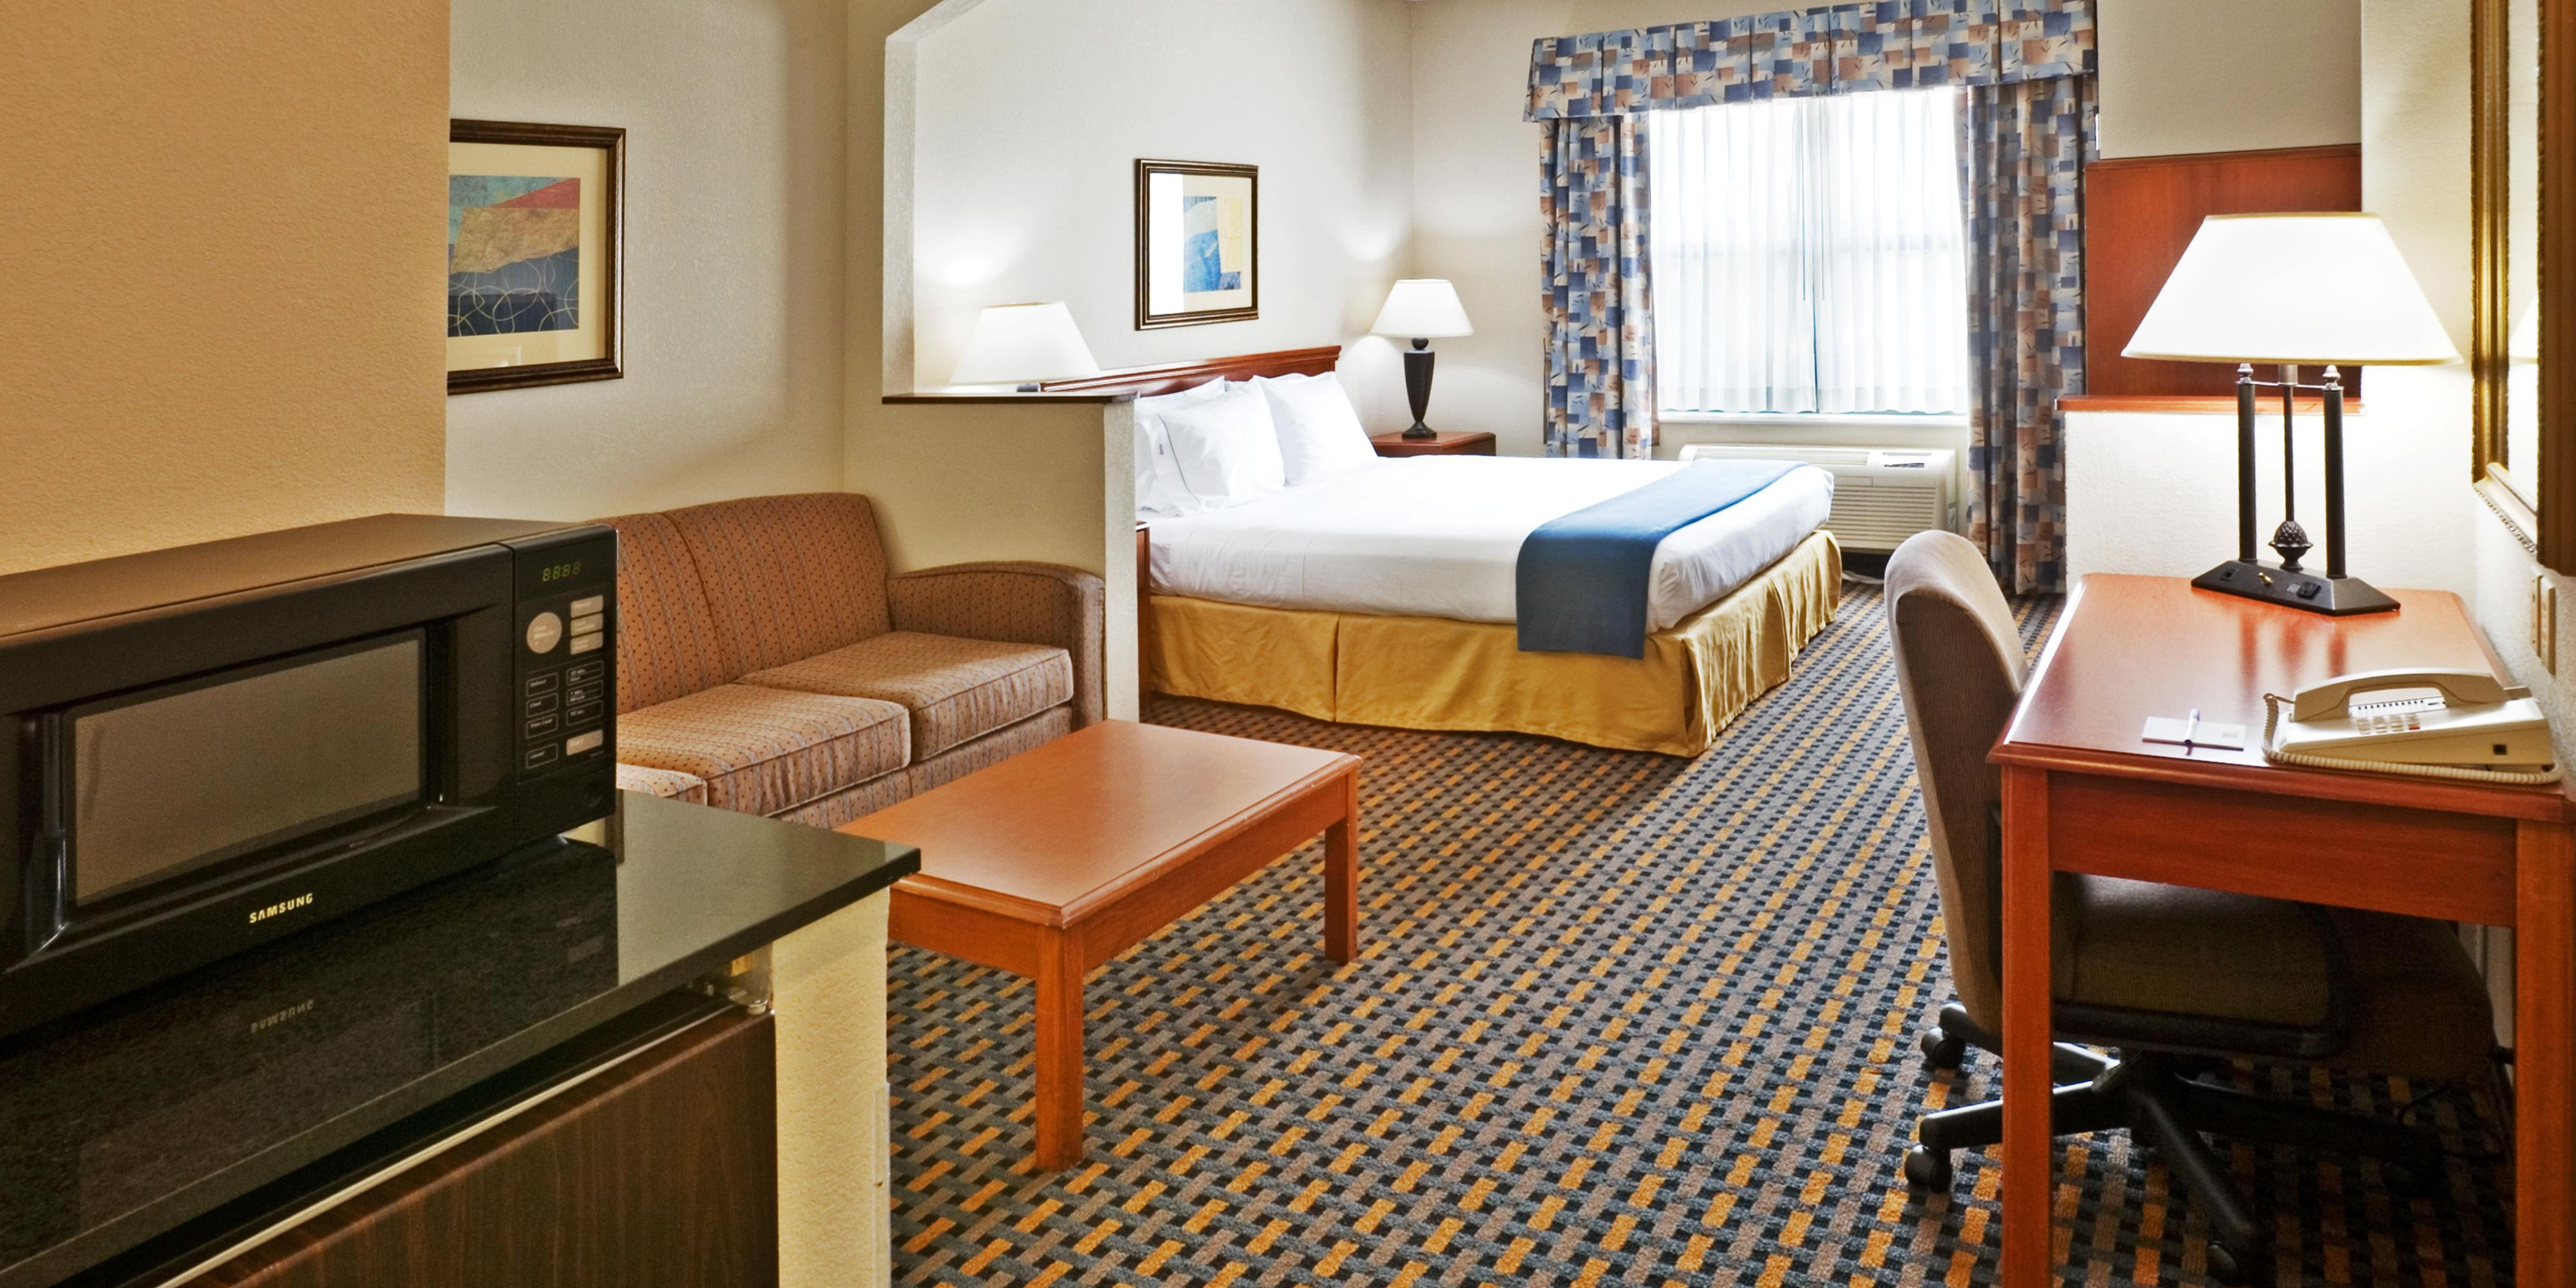 holiday inn express suites dallas stemmons fwy i 35 e hotel by ihg